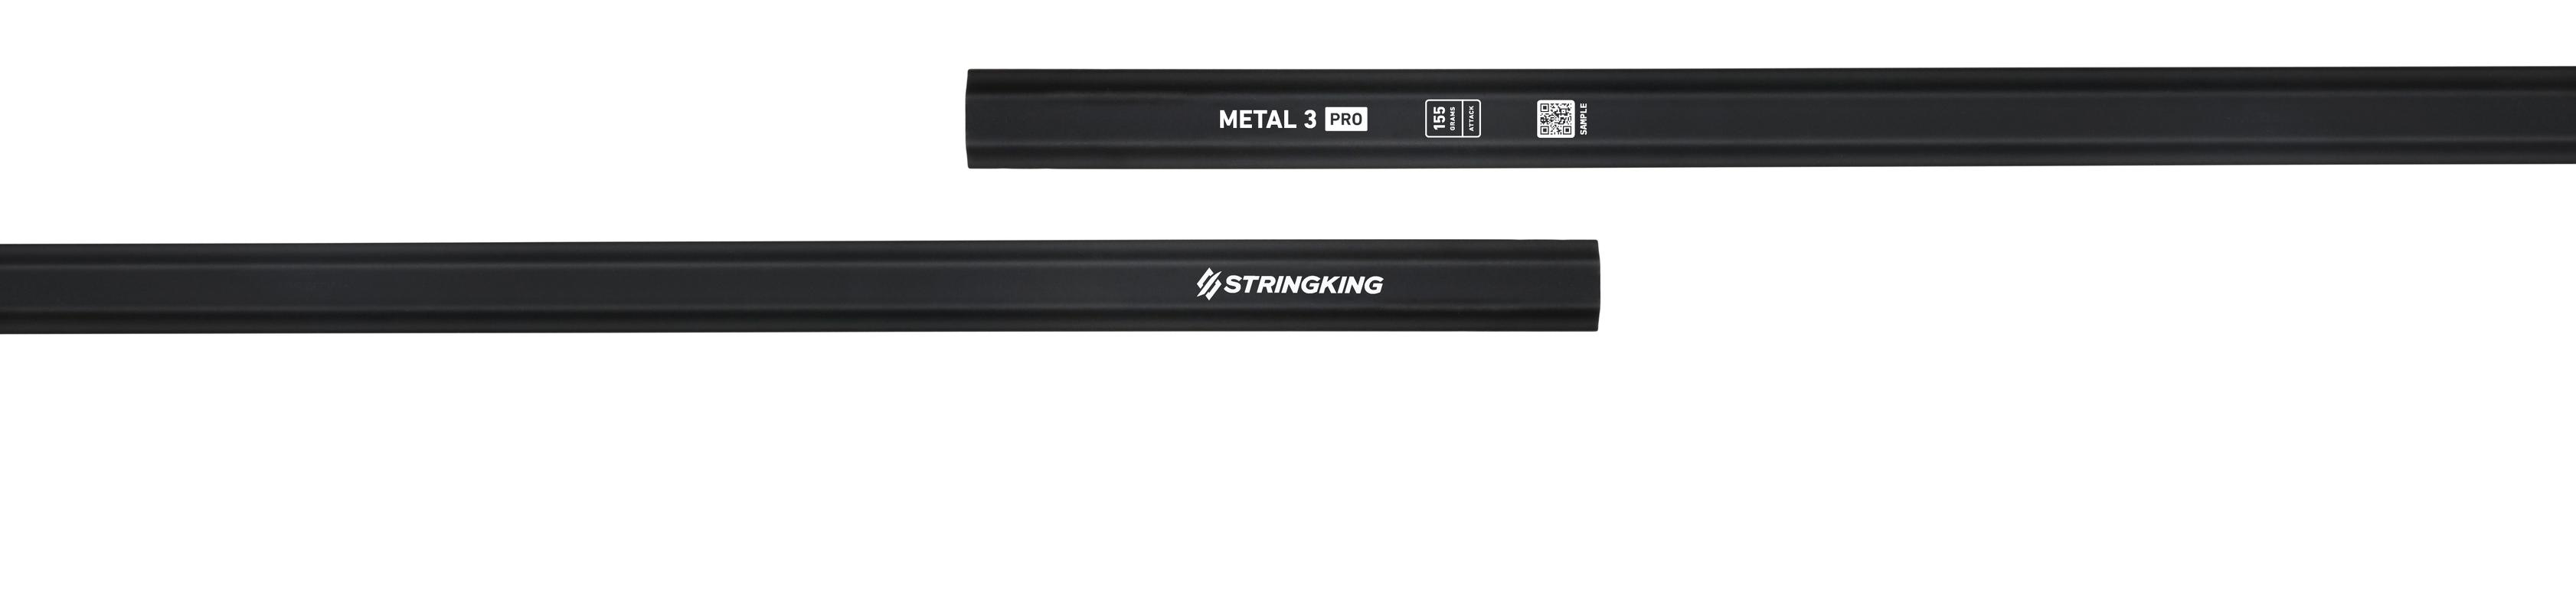 Metal 3 Pro Attack 155 Lacrosse Shaft Category Image Black Silver